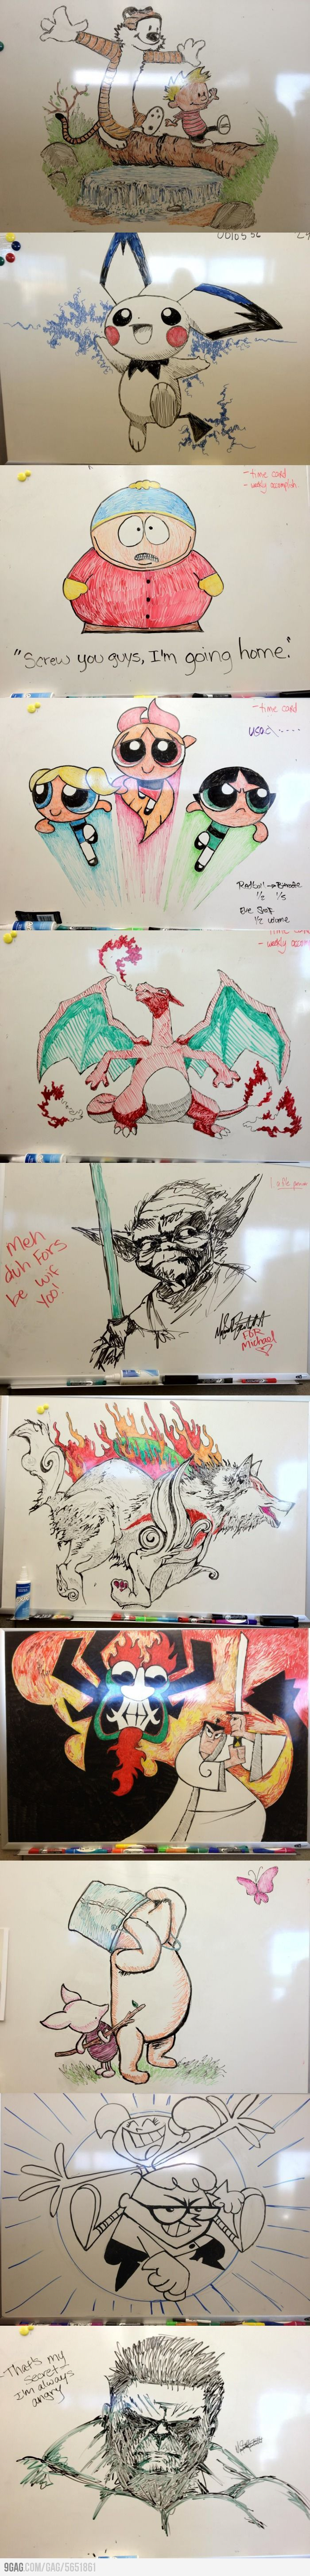 95 best drawings and graphics images on pinterest charts for Stuff to draw on a whiteboard